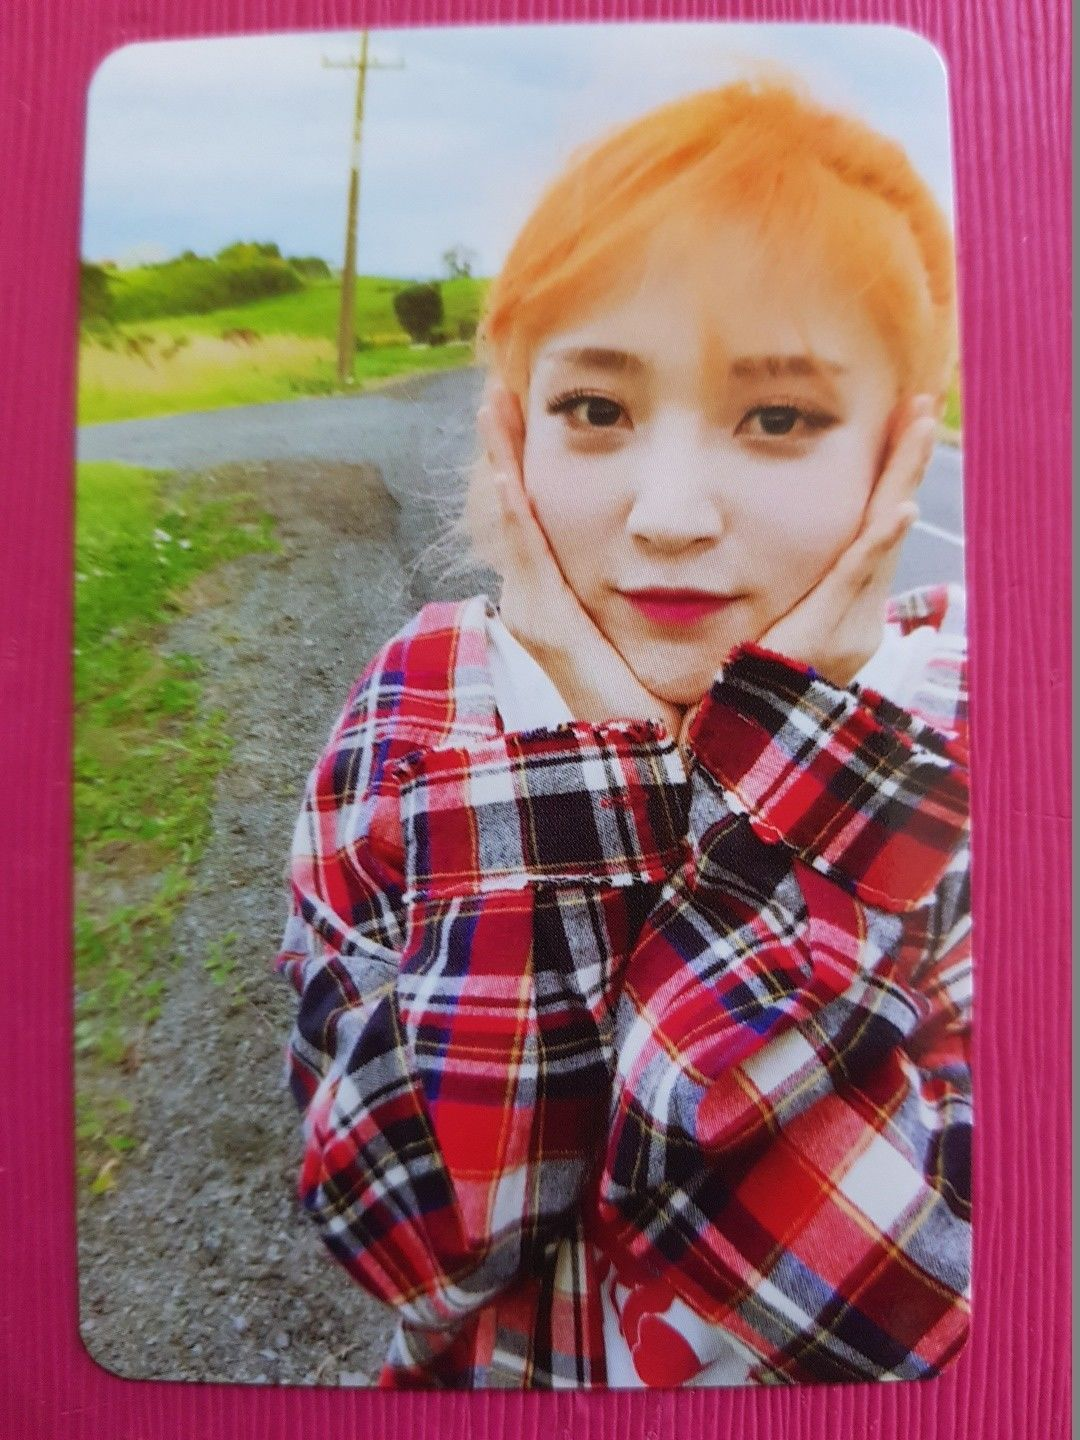 11.39 Mamamoo Moonbyul Authentic Official Photocard